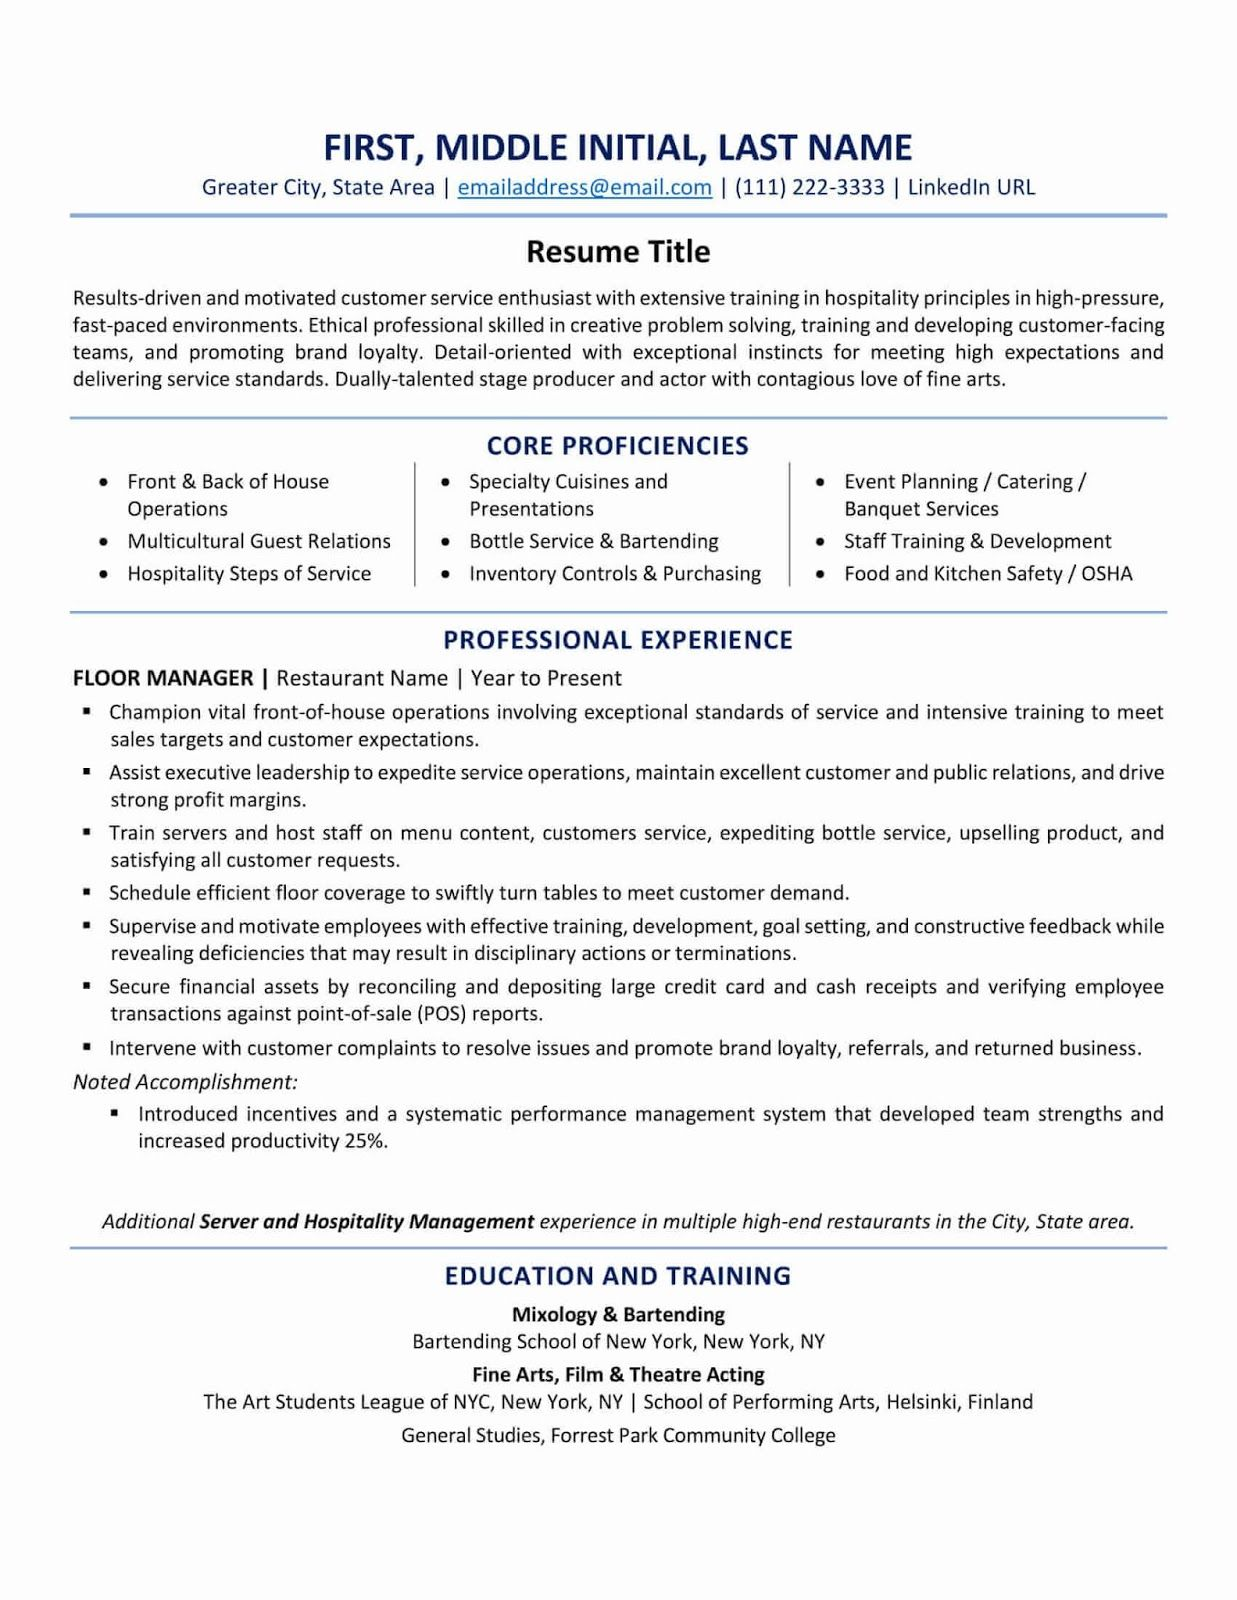 Cv Resume Meaning In Hindi